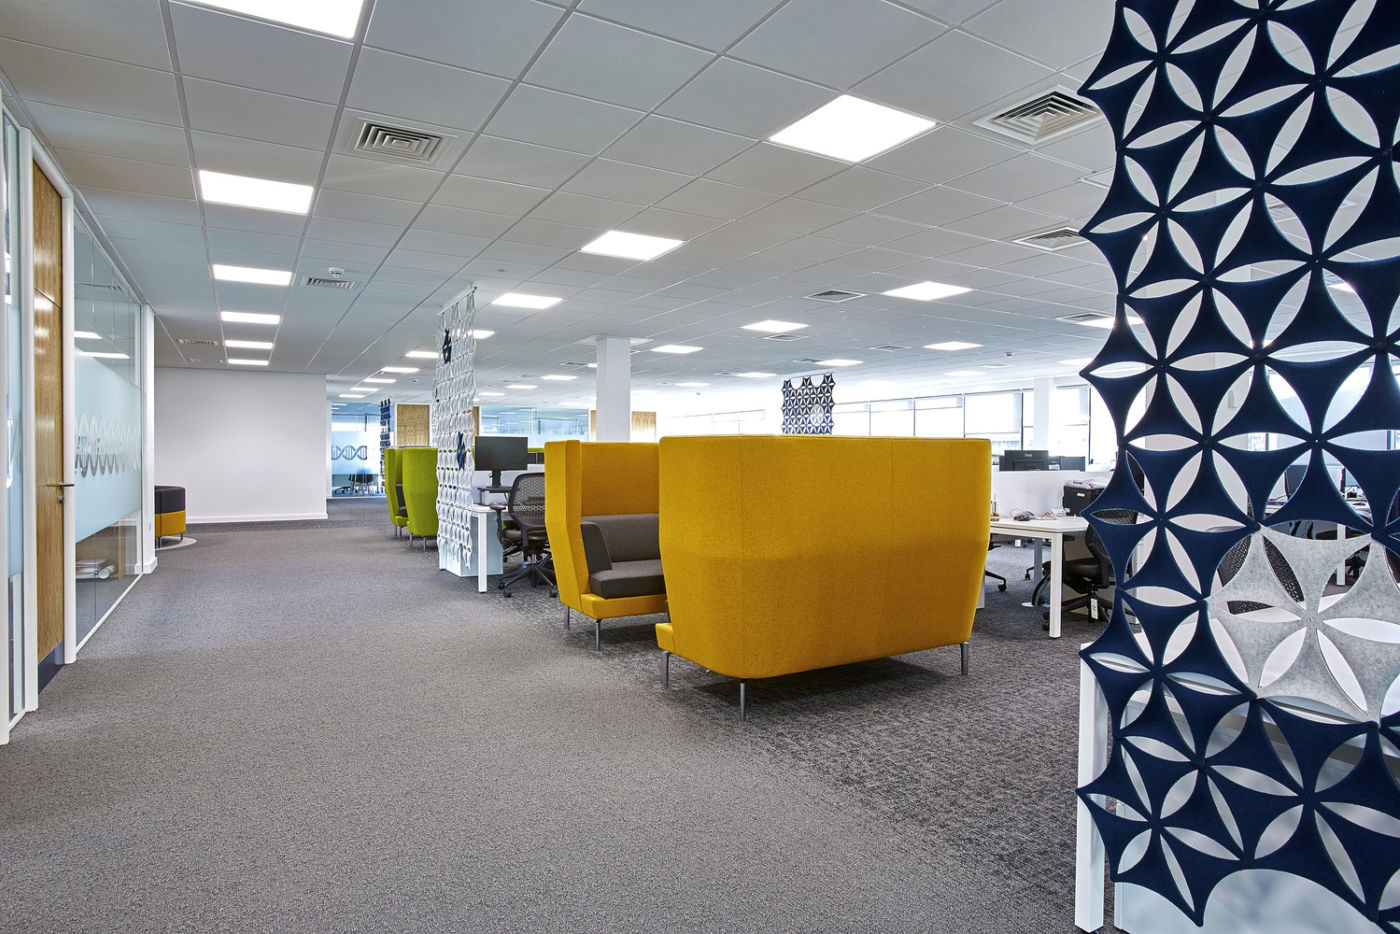 Vibrant meeting areas situated between meeting rooms and workstations